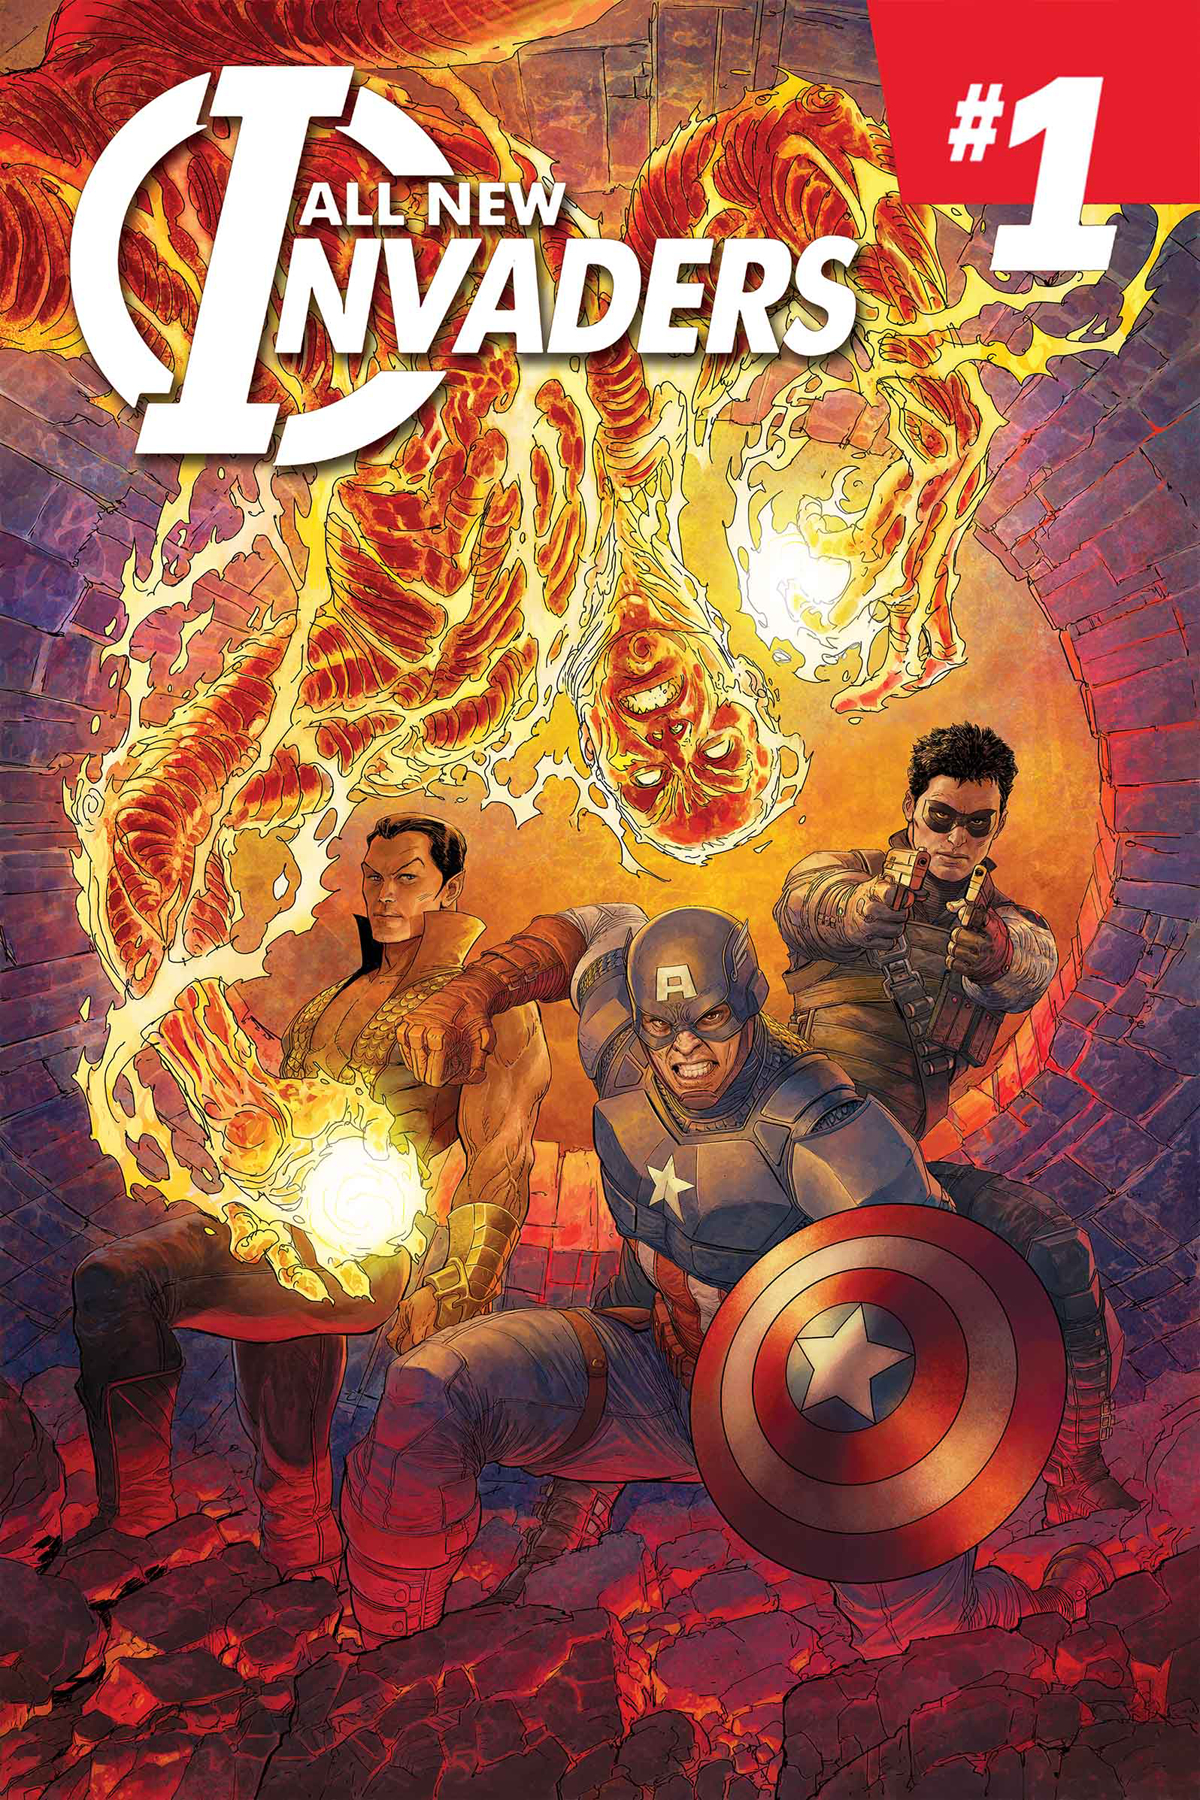 ALL NEW INVADERS #1 YOUNG VAR ANMN